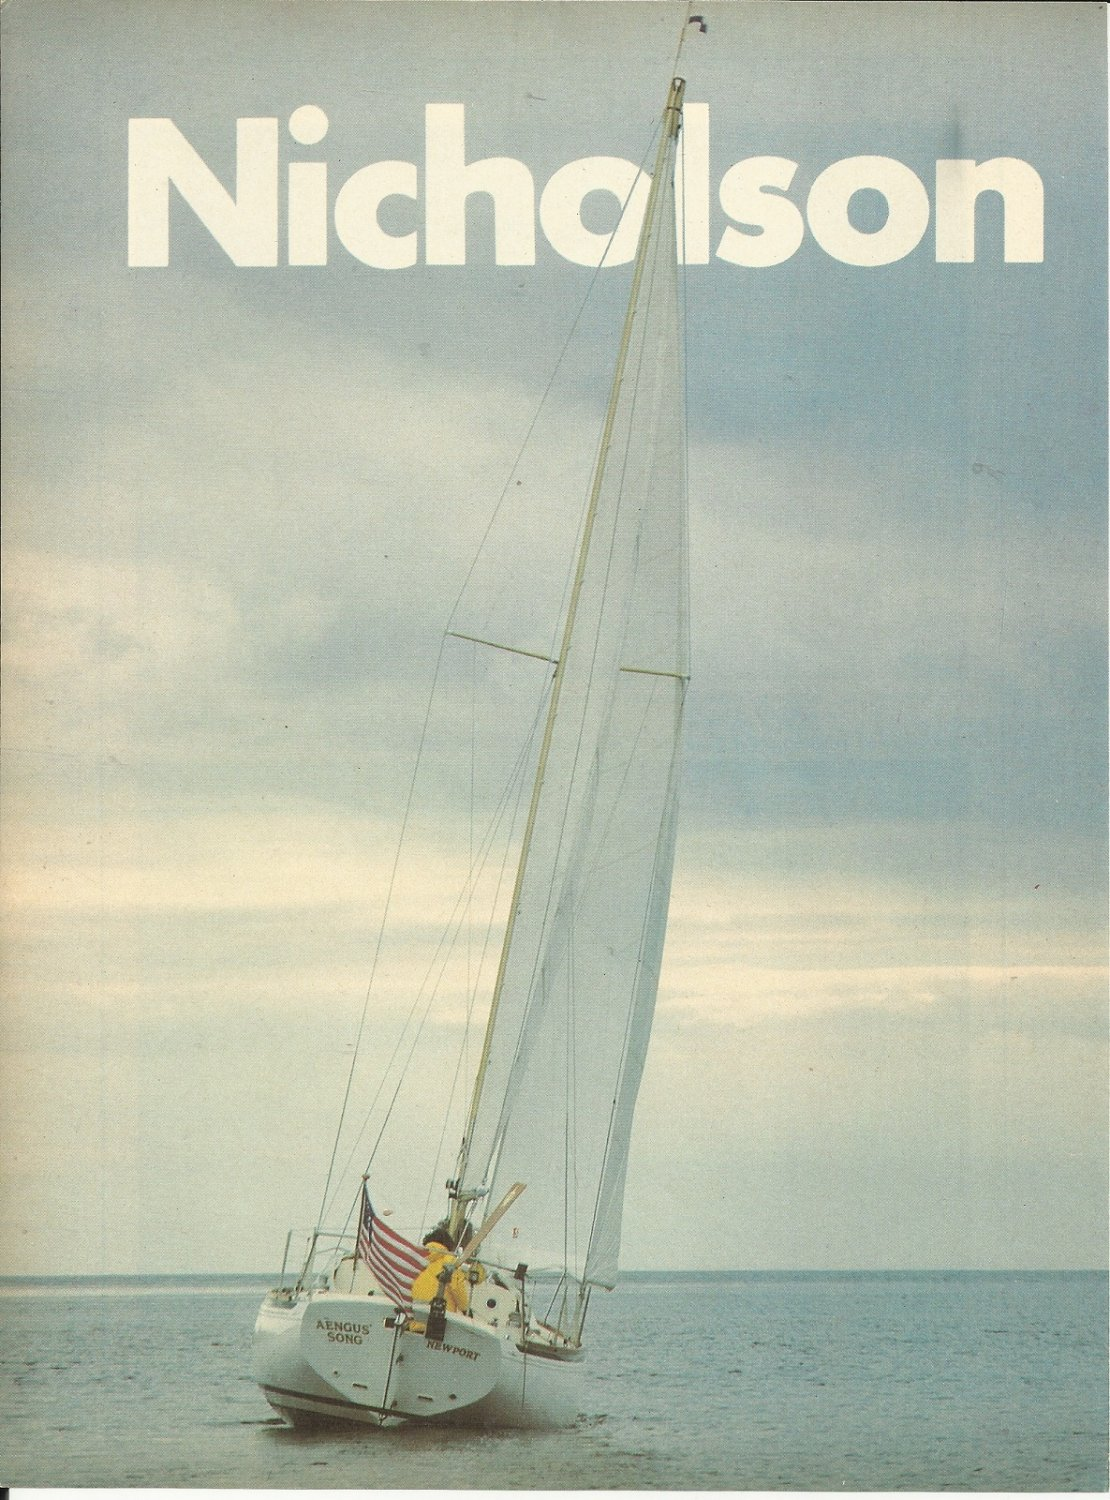 1978 Nicholson 31' Yacht Review & Photos